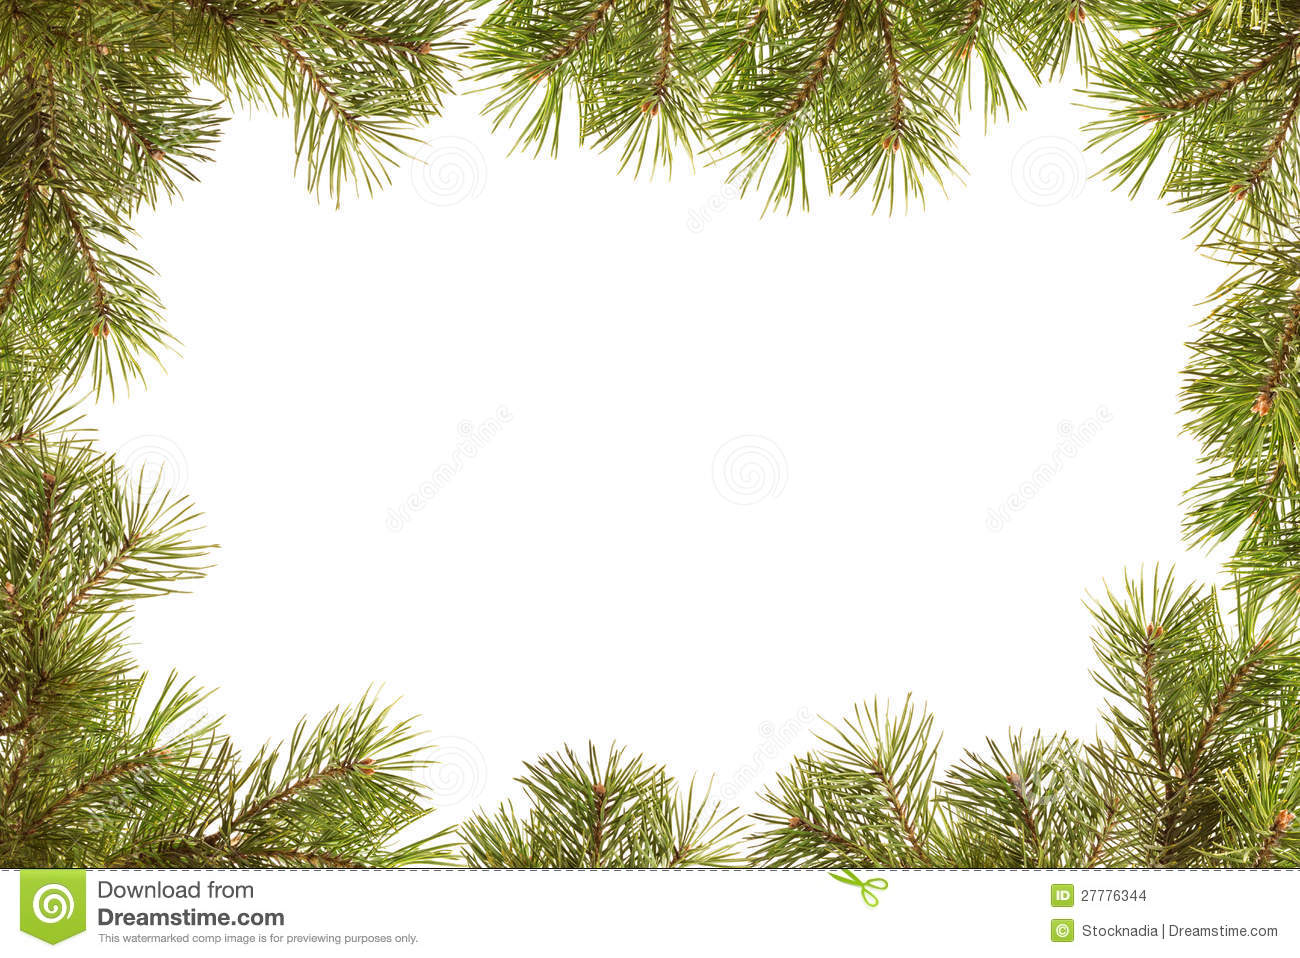 Border, Frame From Christmas Tree Branches Stock Photo 27776344 ...